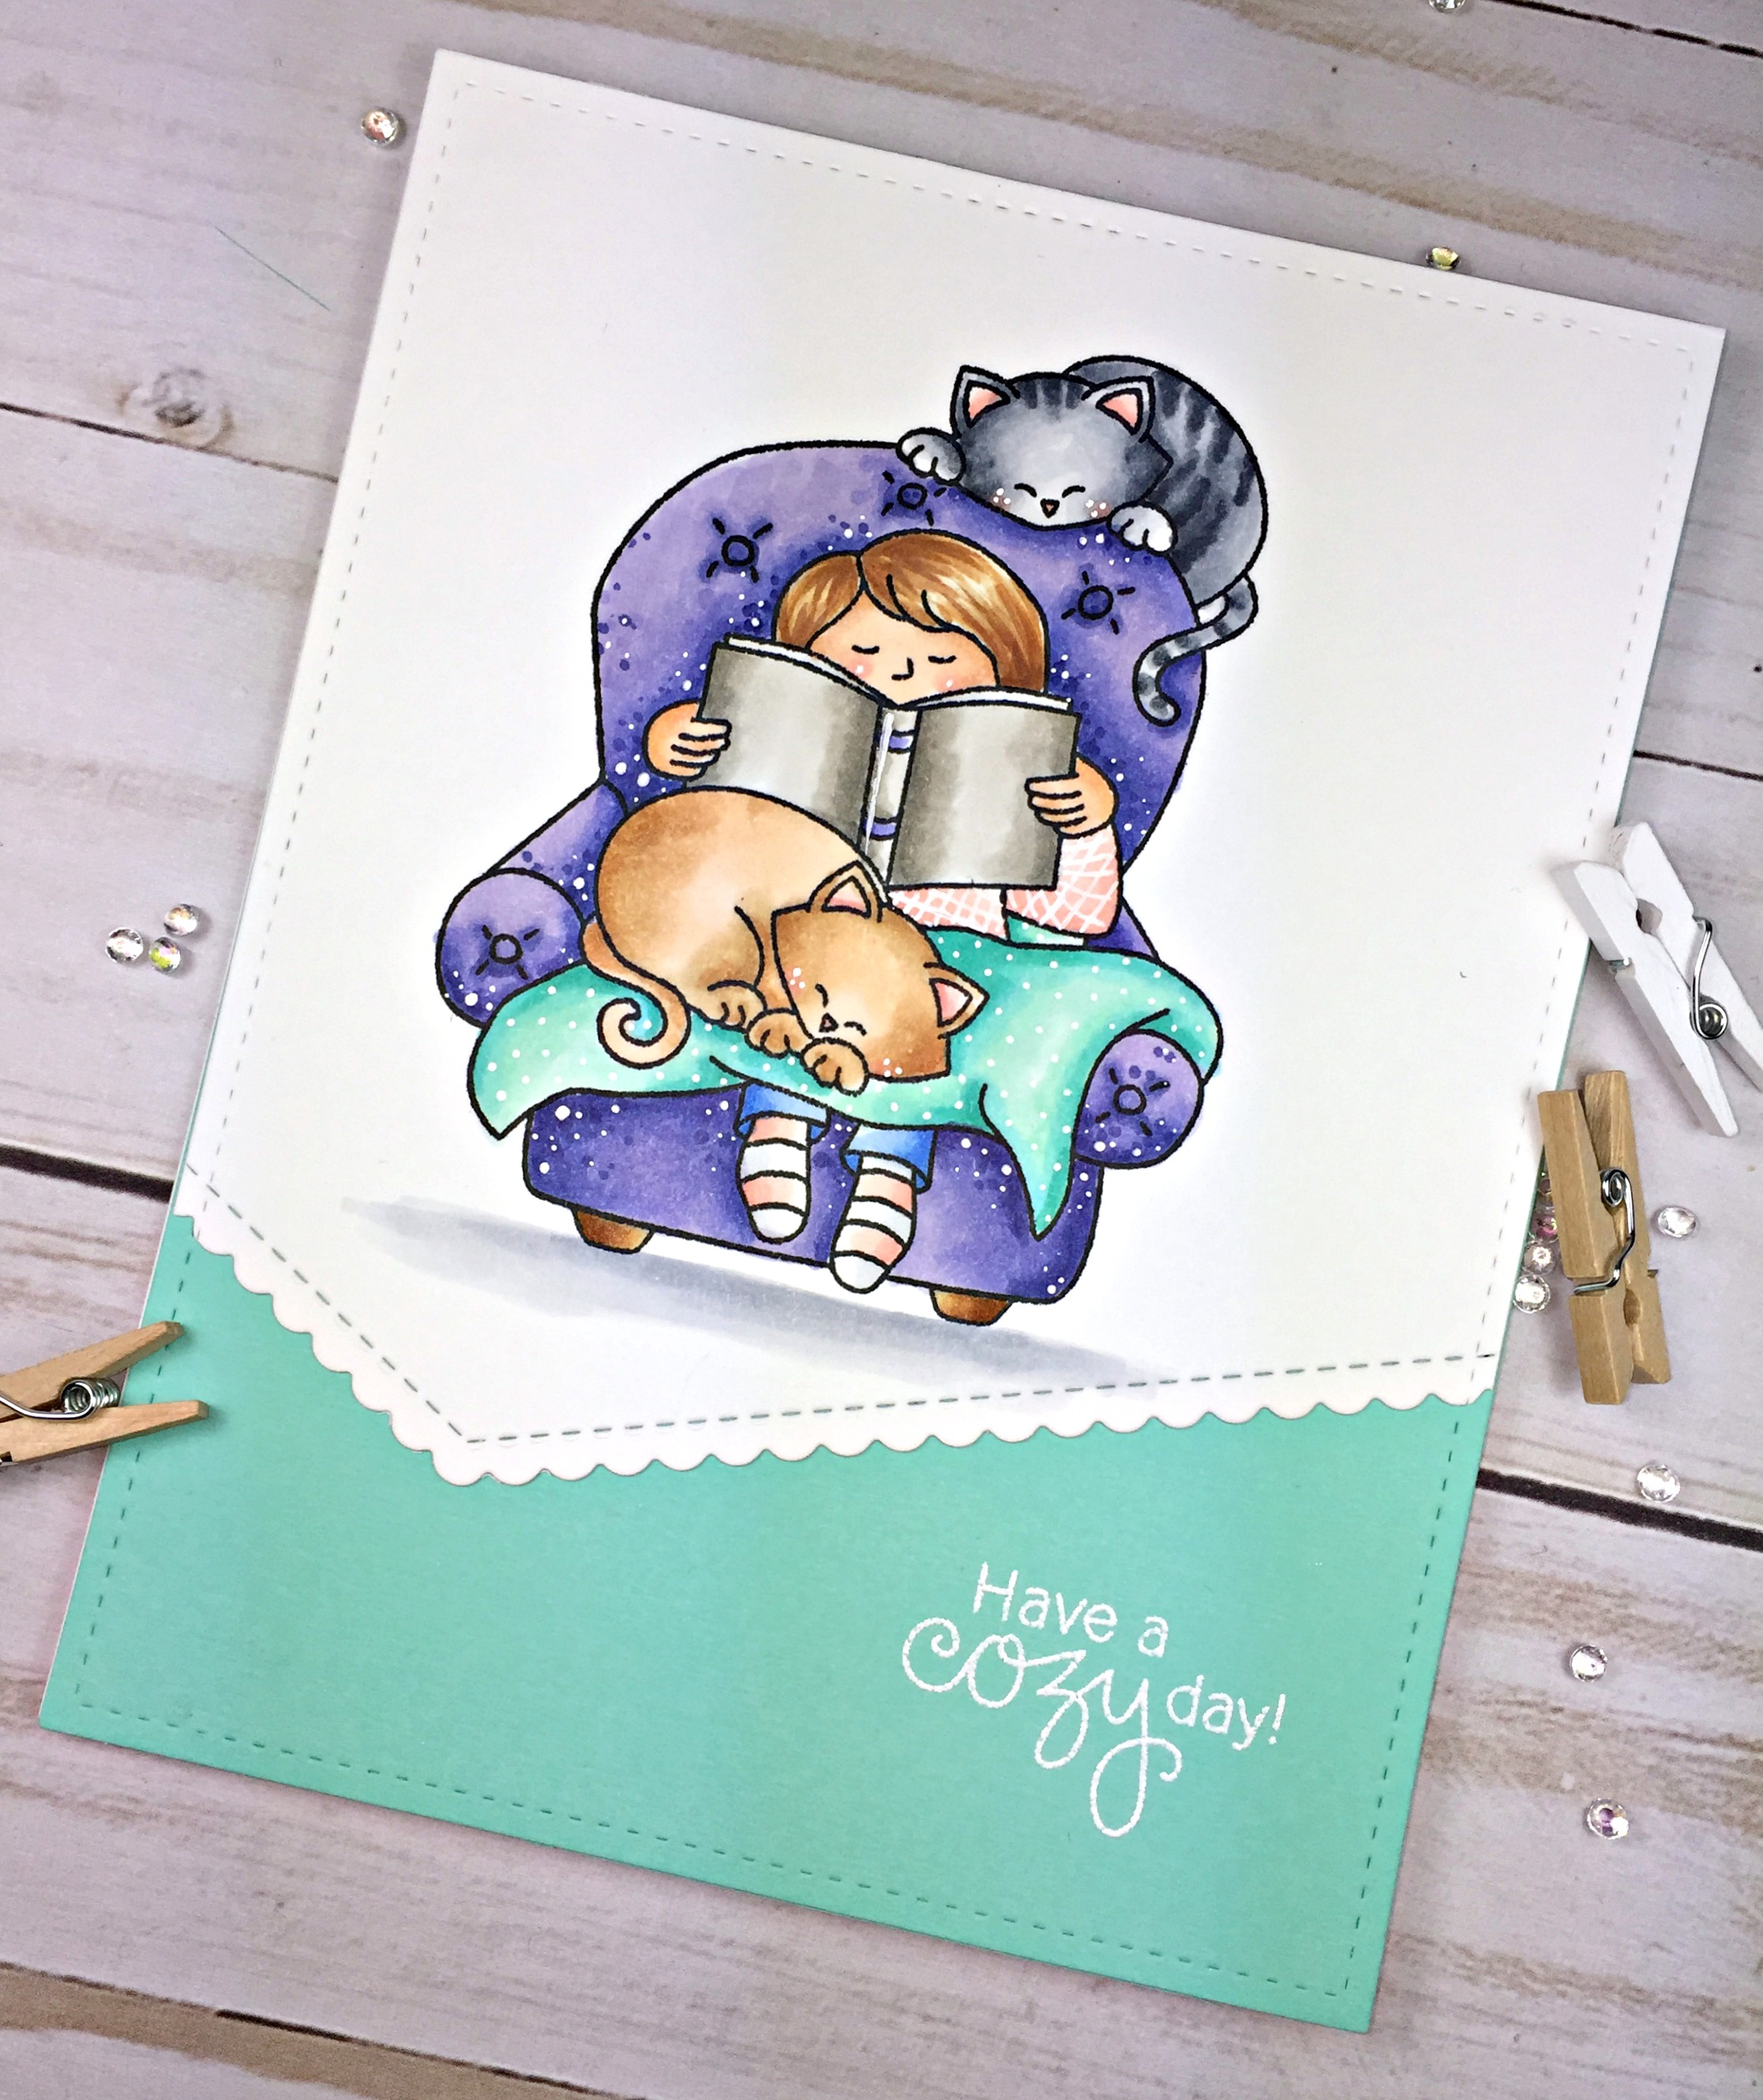 Cozy Kitty Card by May Guest Designer Cassie Tezak | A Cozy Day In Stamp set by Newton's Nook Designs #newtonsnook